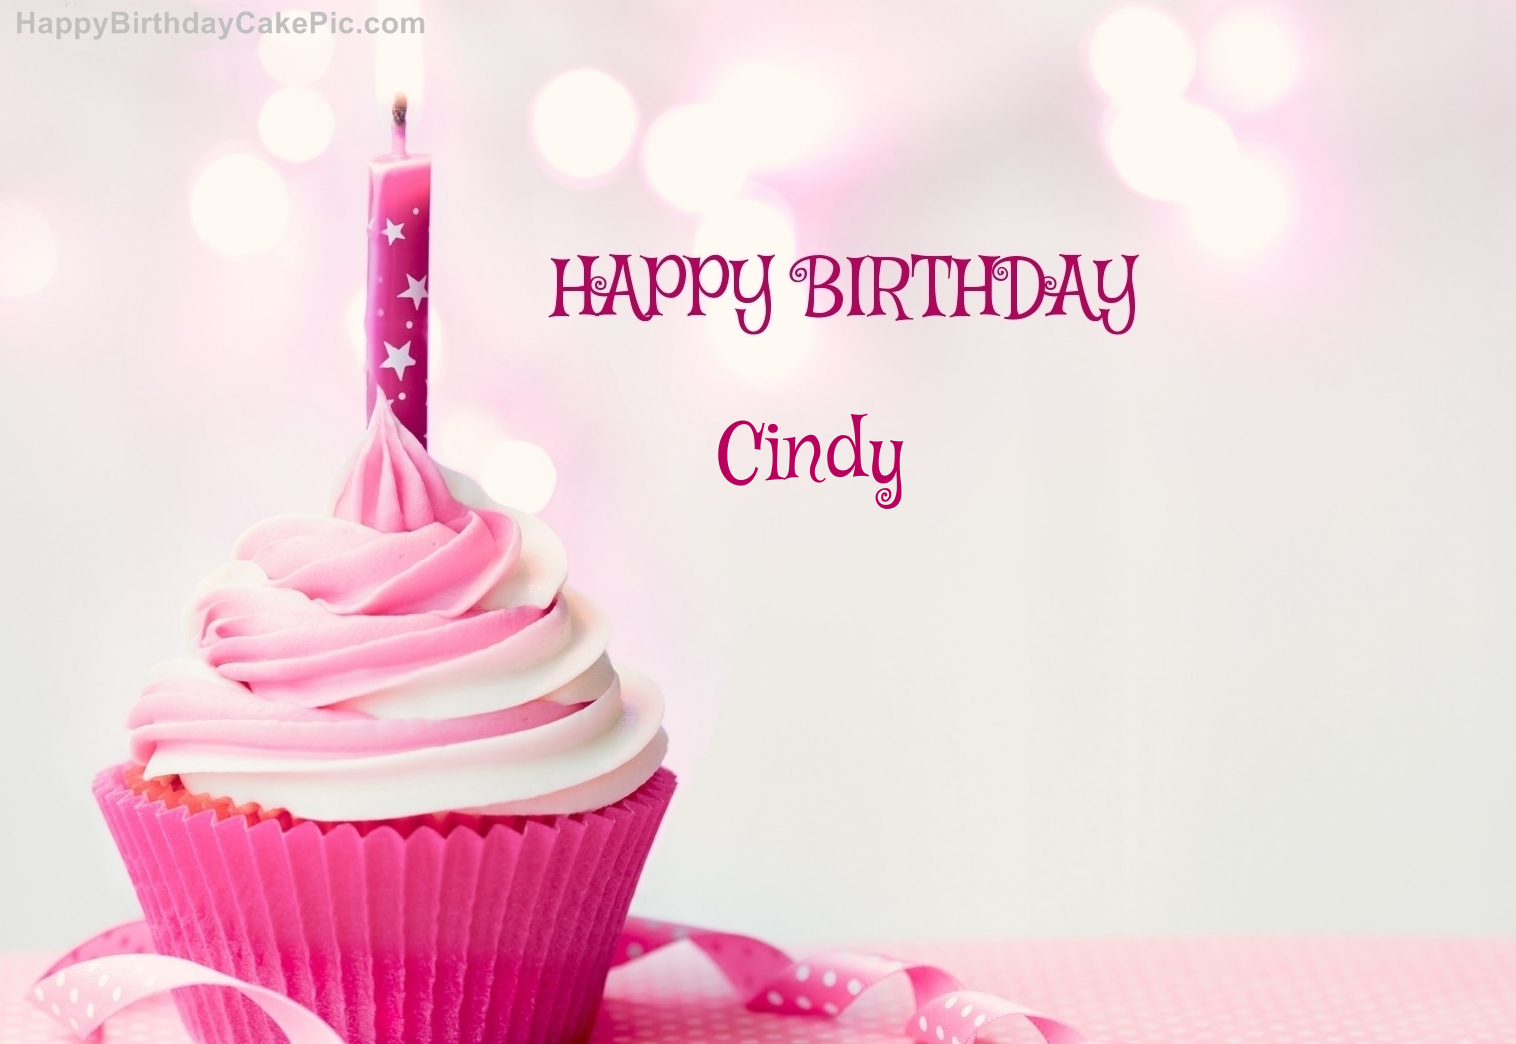 Happy Birthday Cupcake Candle Pink Cake For Cindy